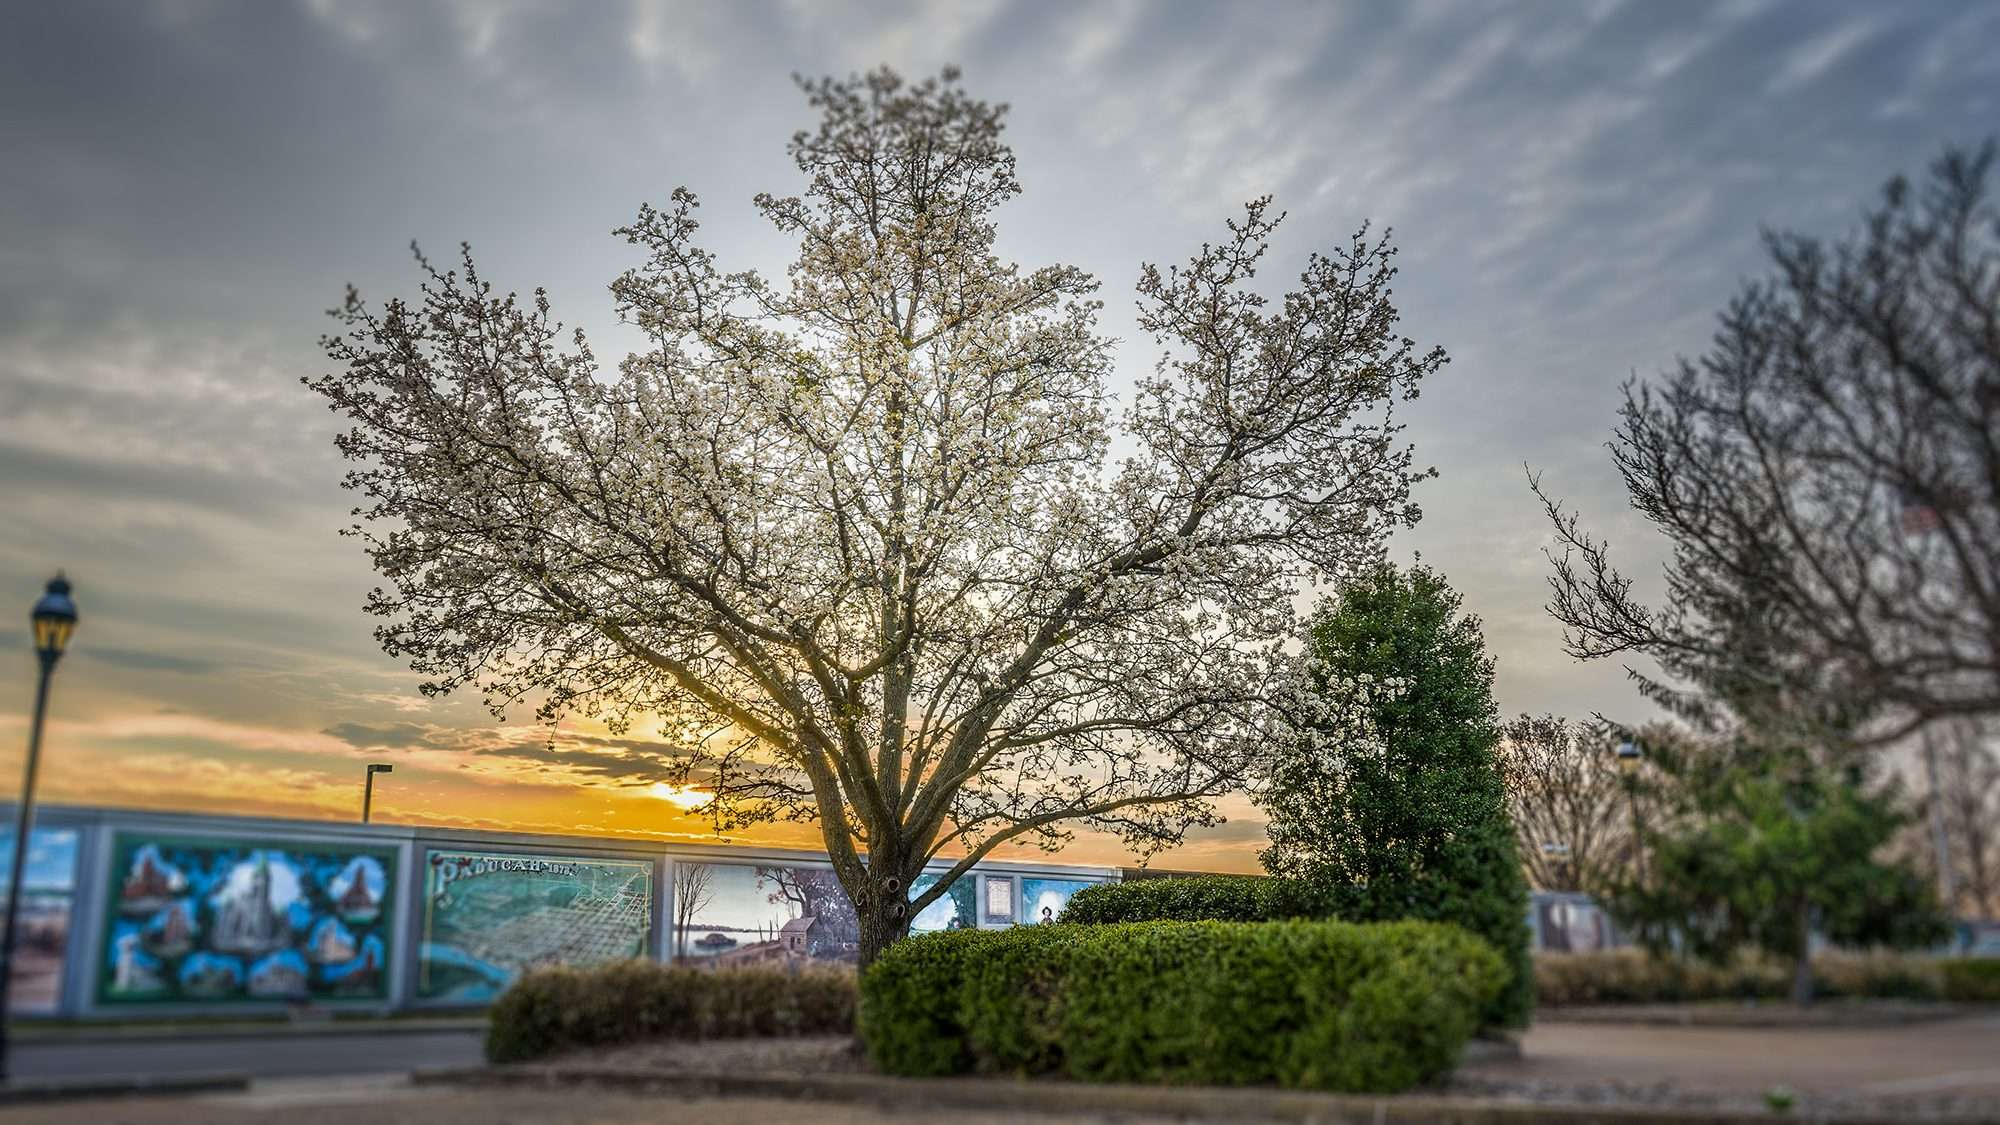 3.16.2018 - Dogwood Tree in bloom at Gazebo parking lot in downtown Paducah, KY small/photonews247.com